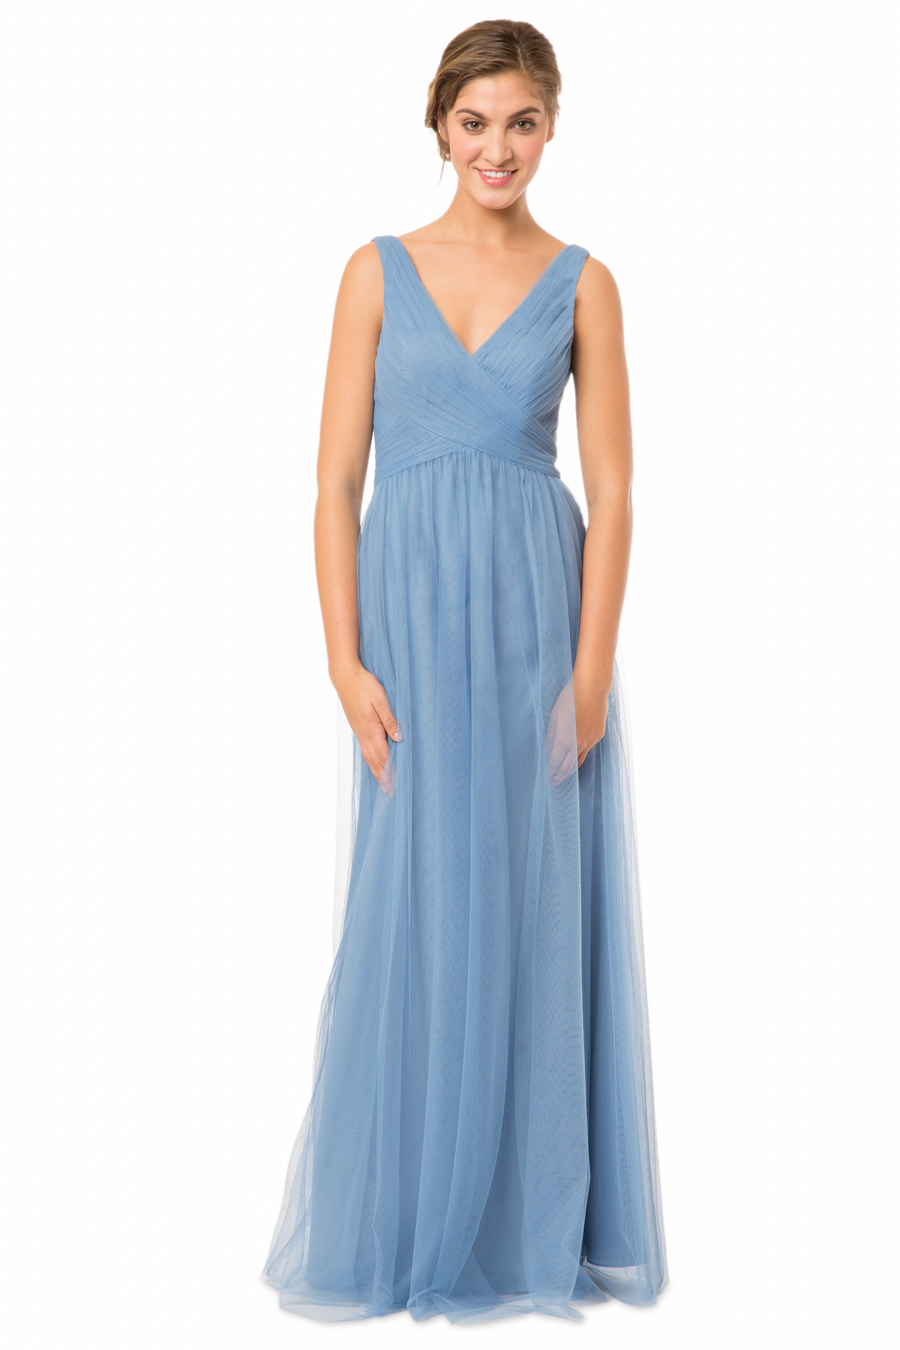 STYLE: 1570 | Bridesmaid Dresses, Evening Gowns & Flower Girl ...